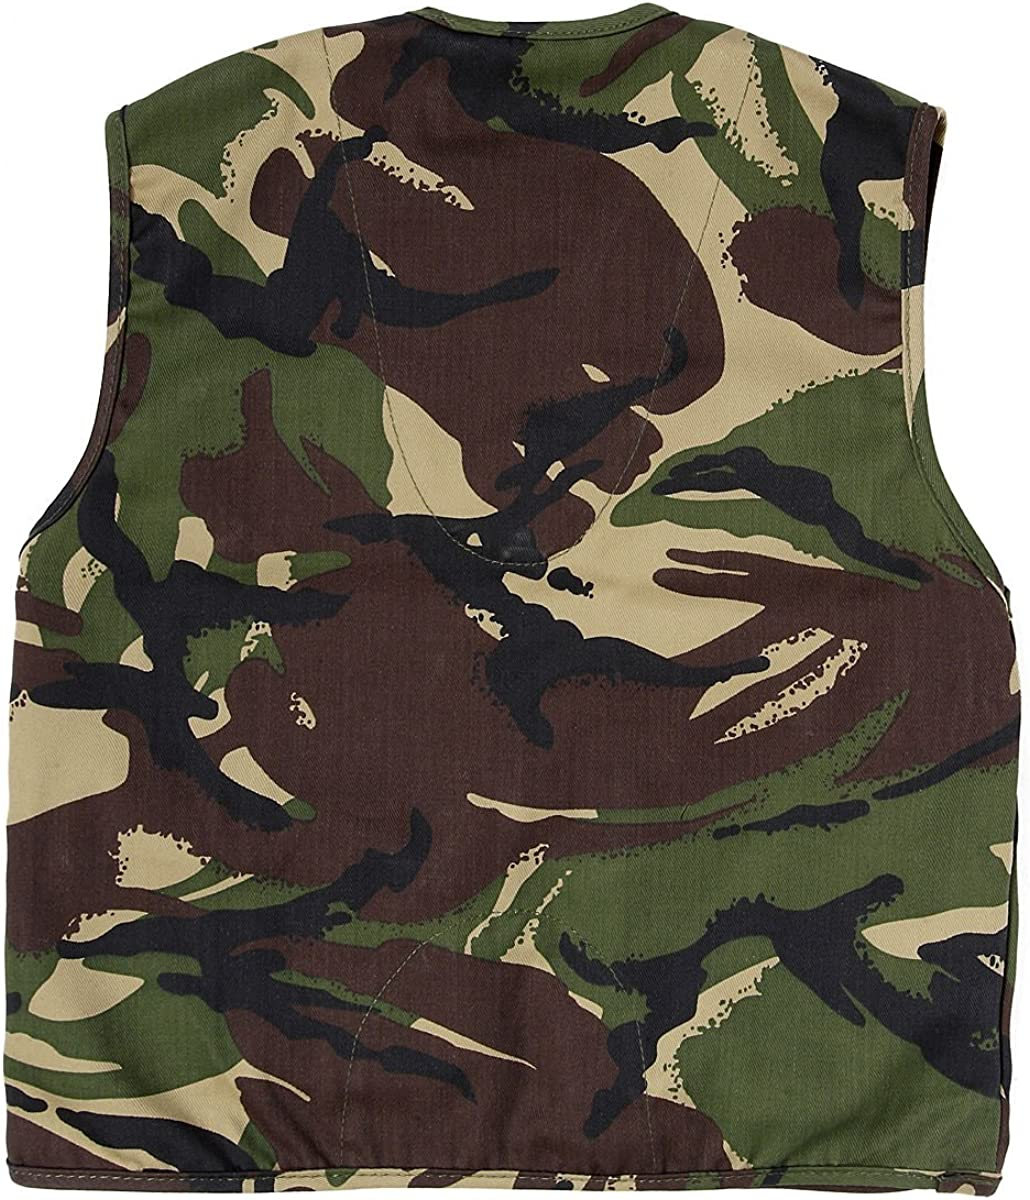 Fits Ages 3-13 Yrs Kids Army Camouflage Multi Pocket Vest Camo